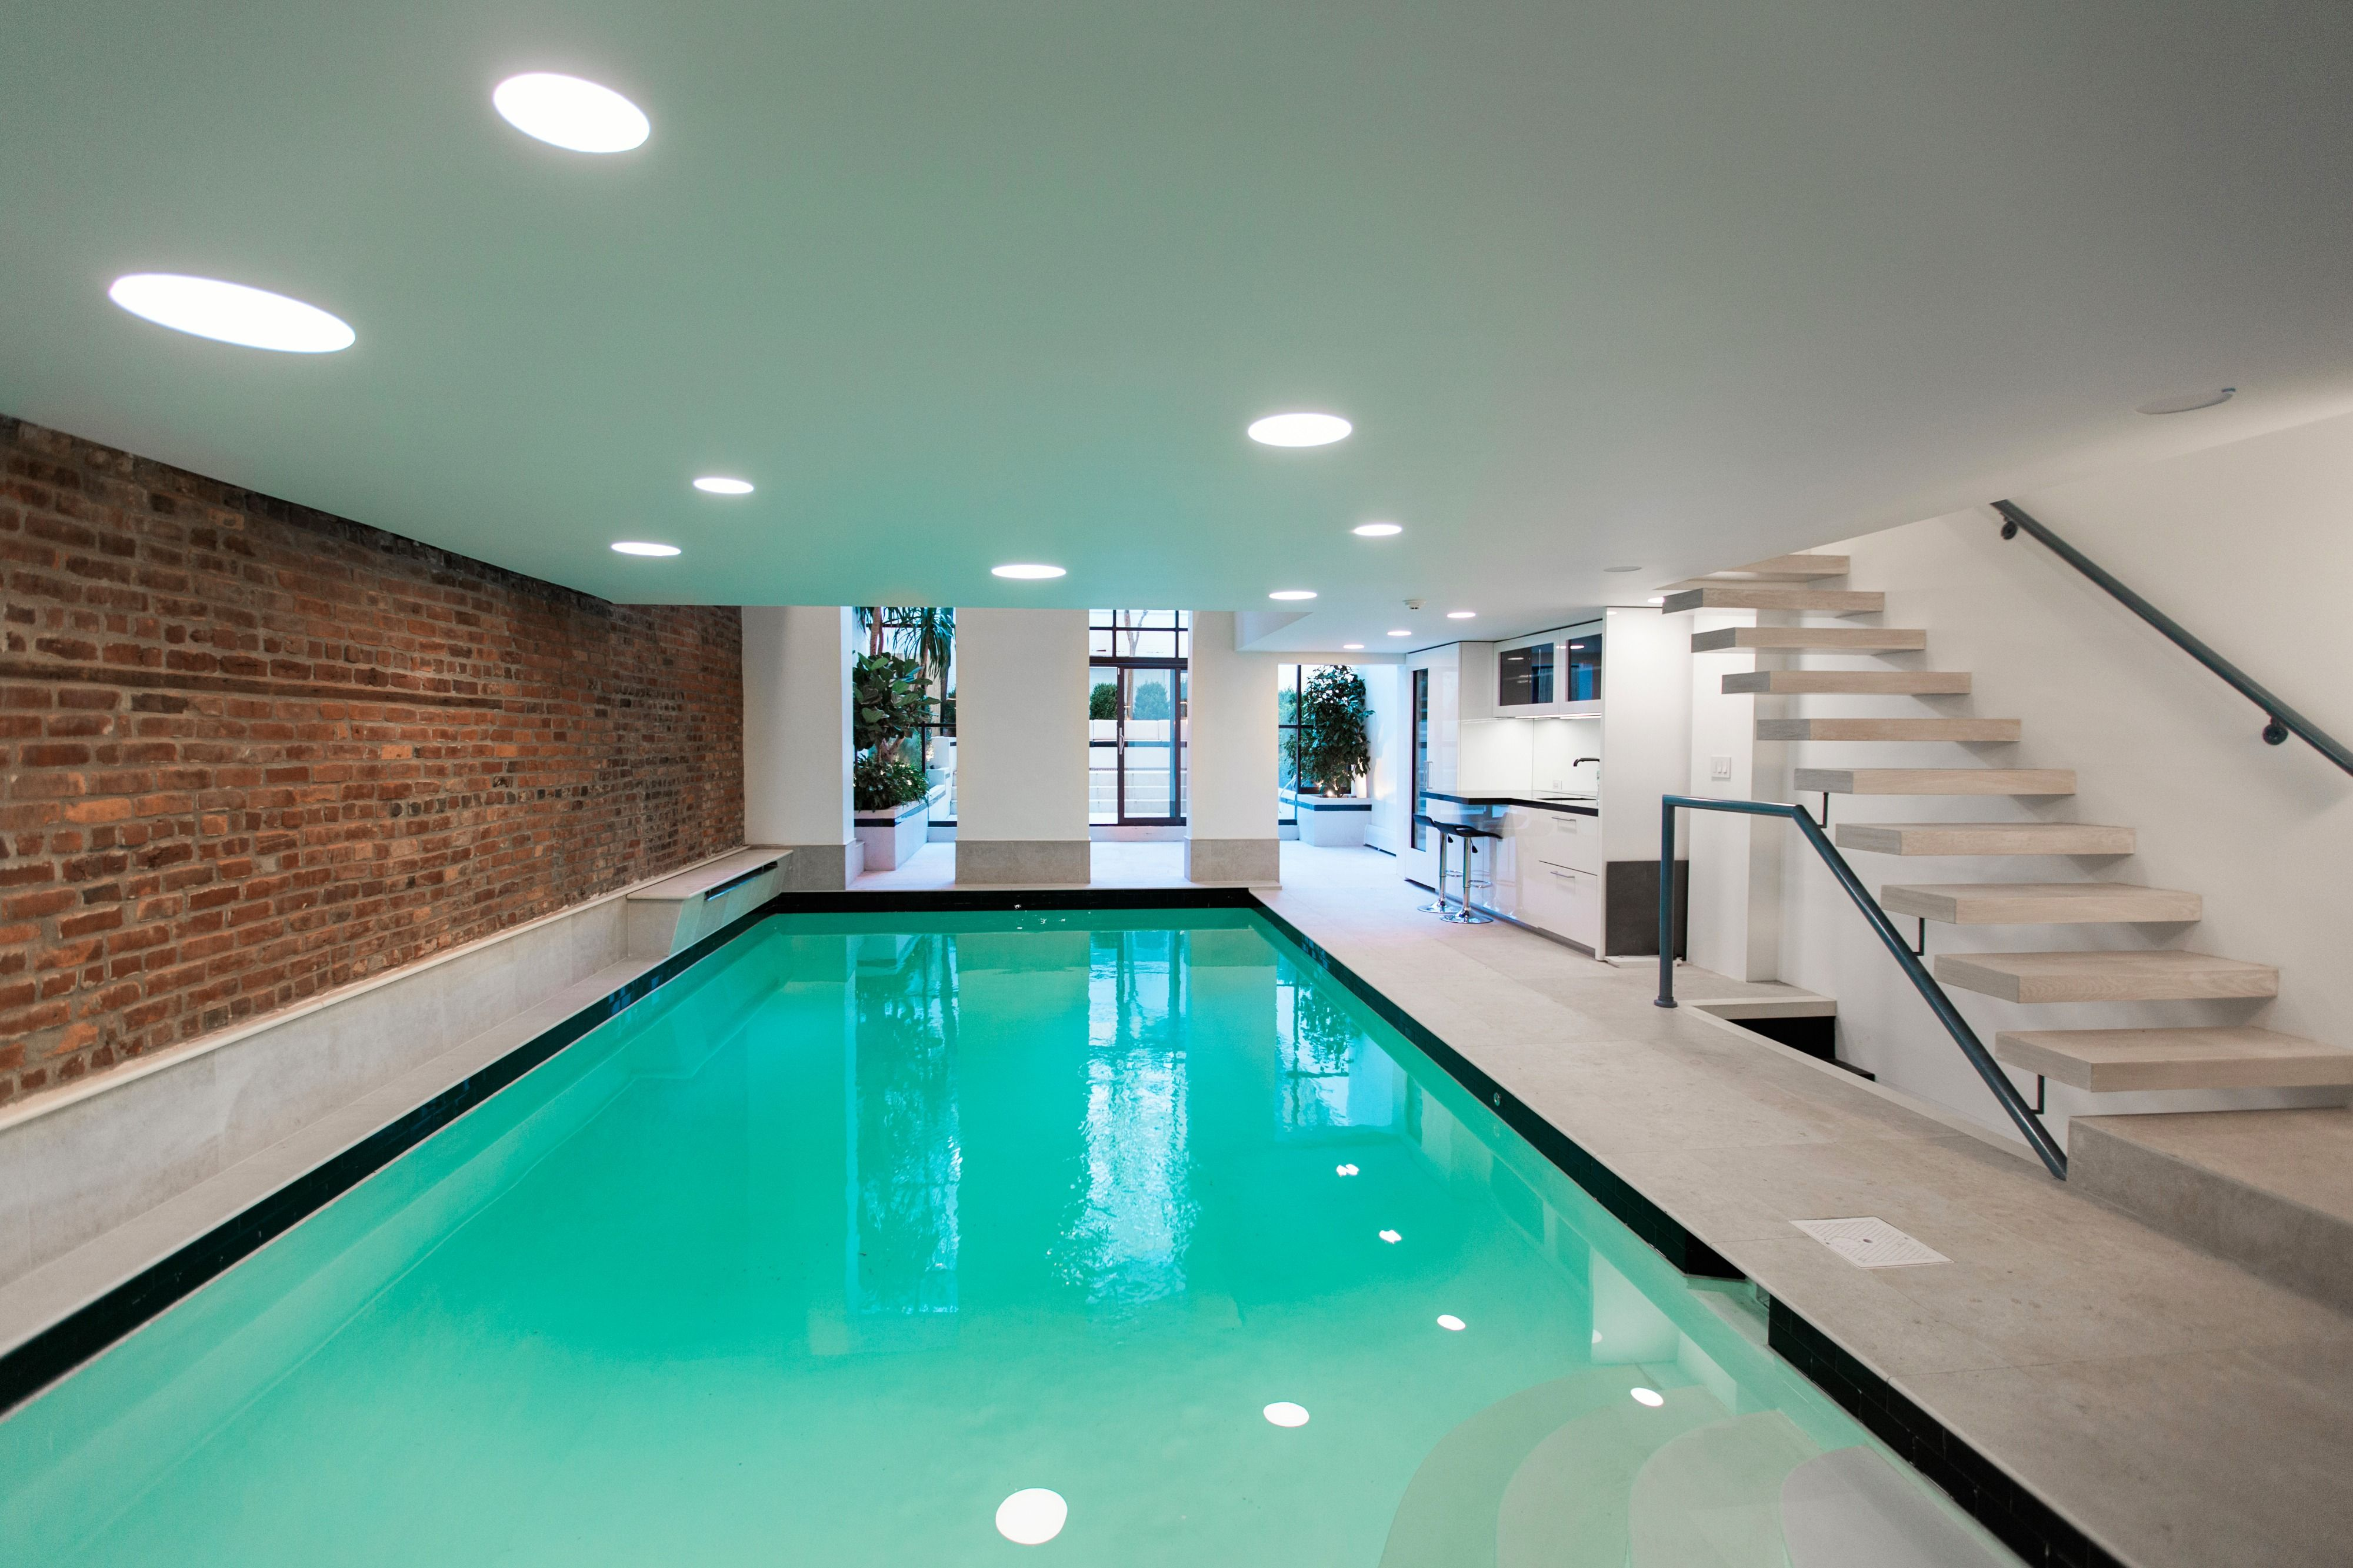 This luxurious residence has an indoor heated pool with